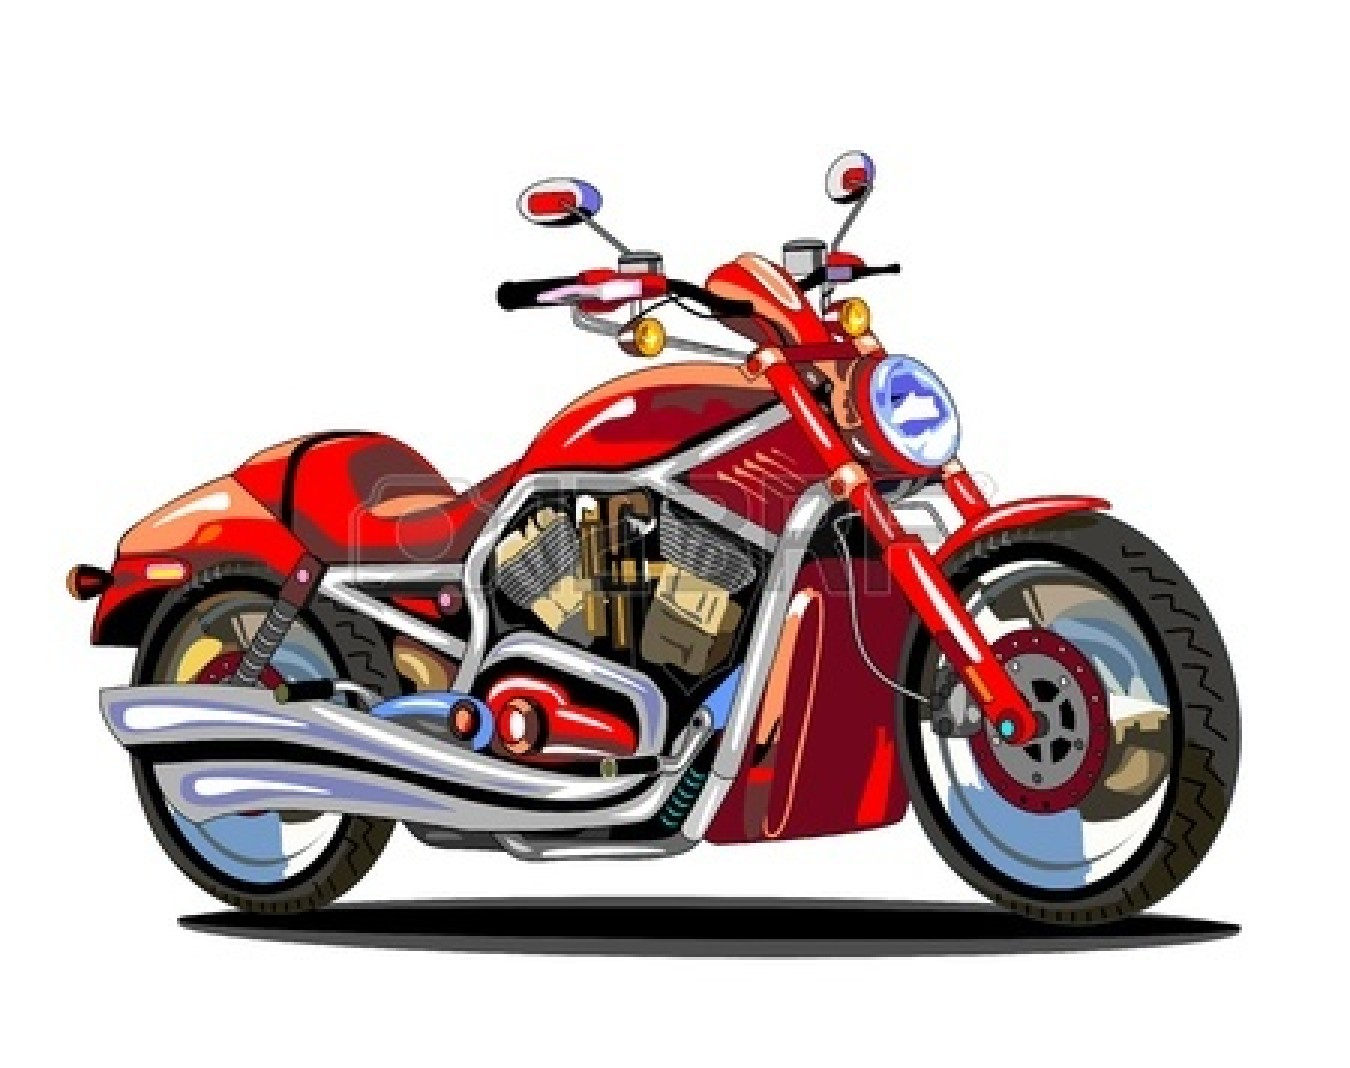 Motorcycle clip art free download.